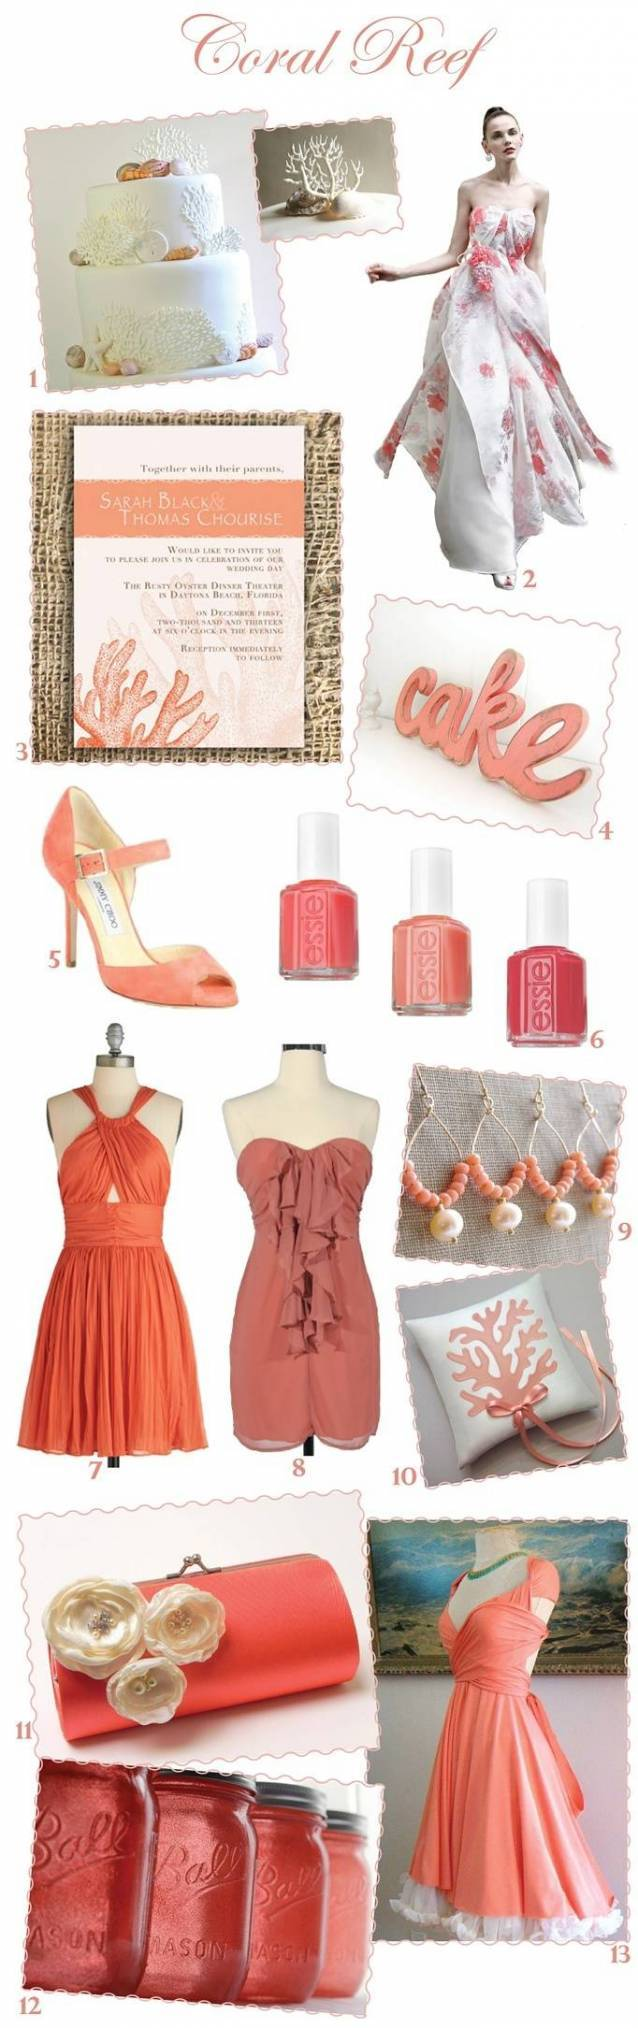 coral wedding inspiration board